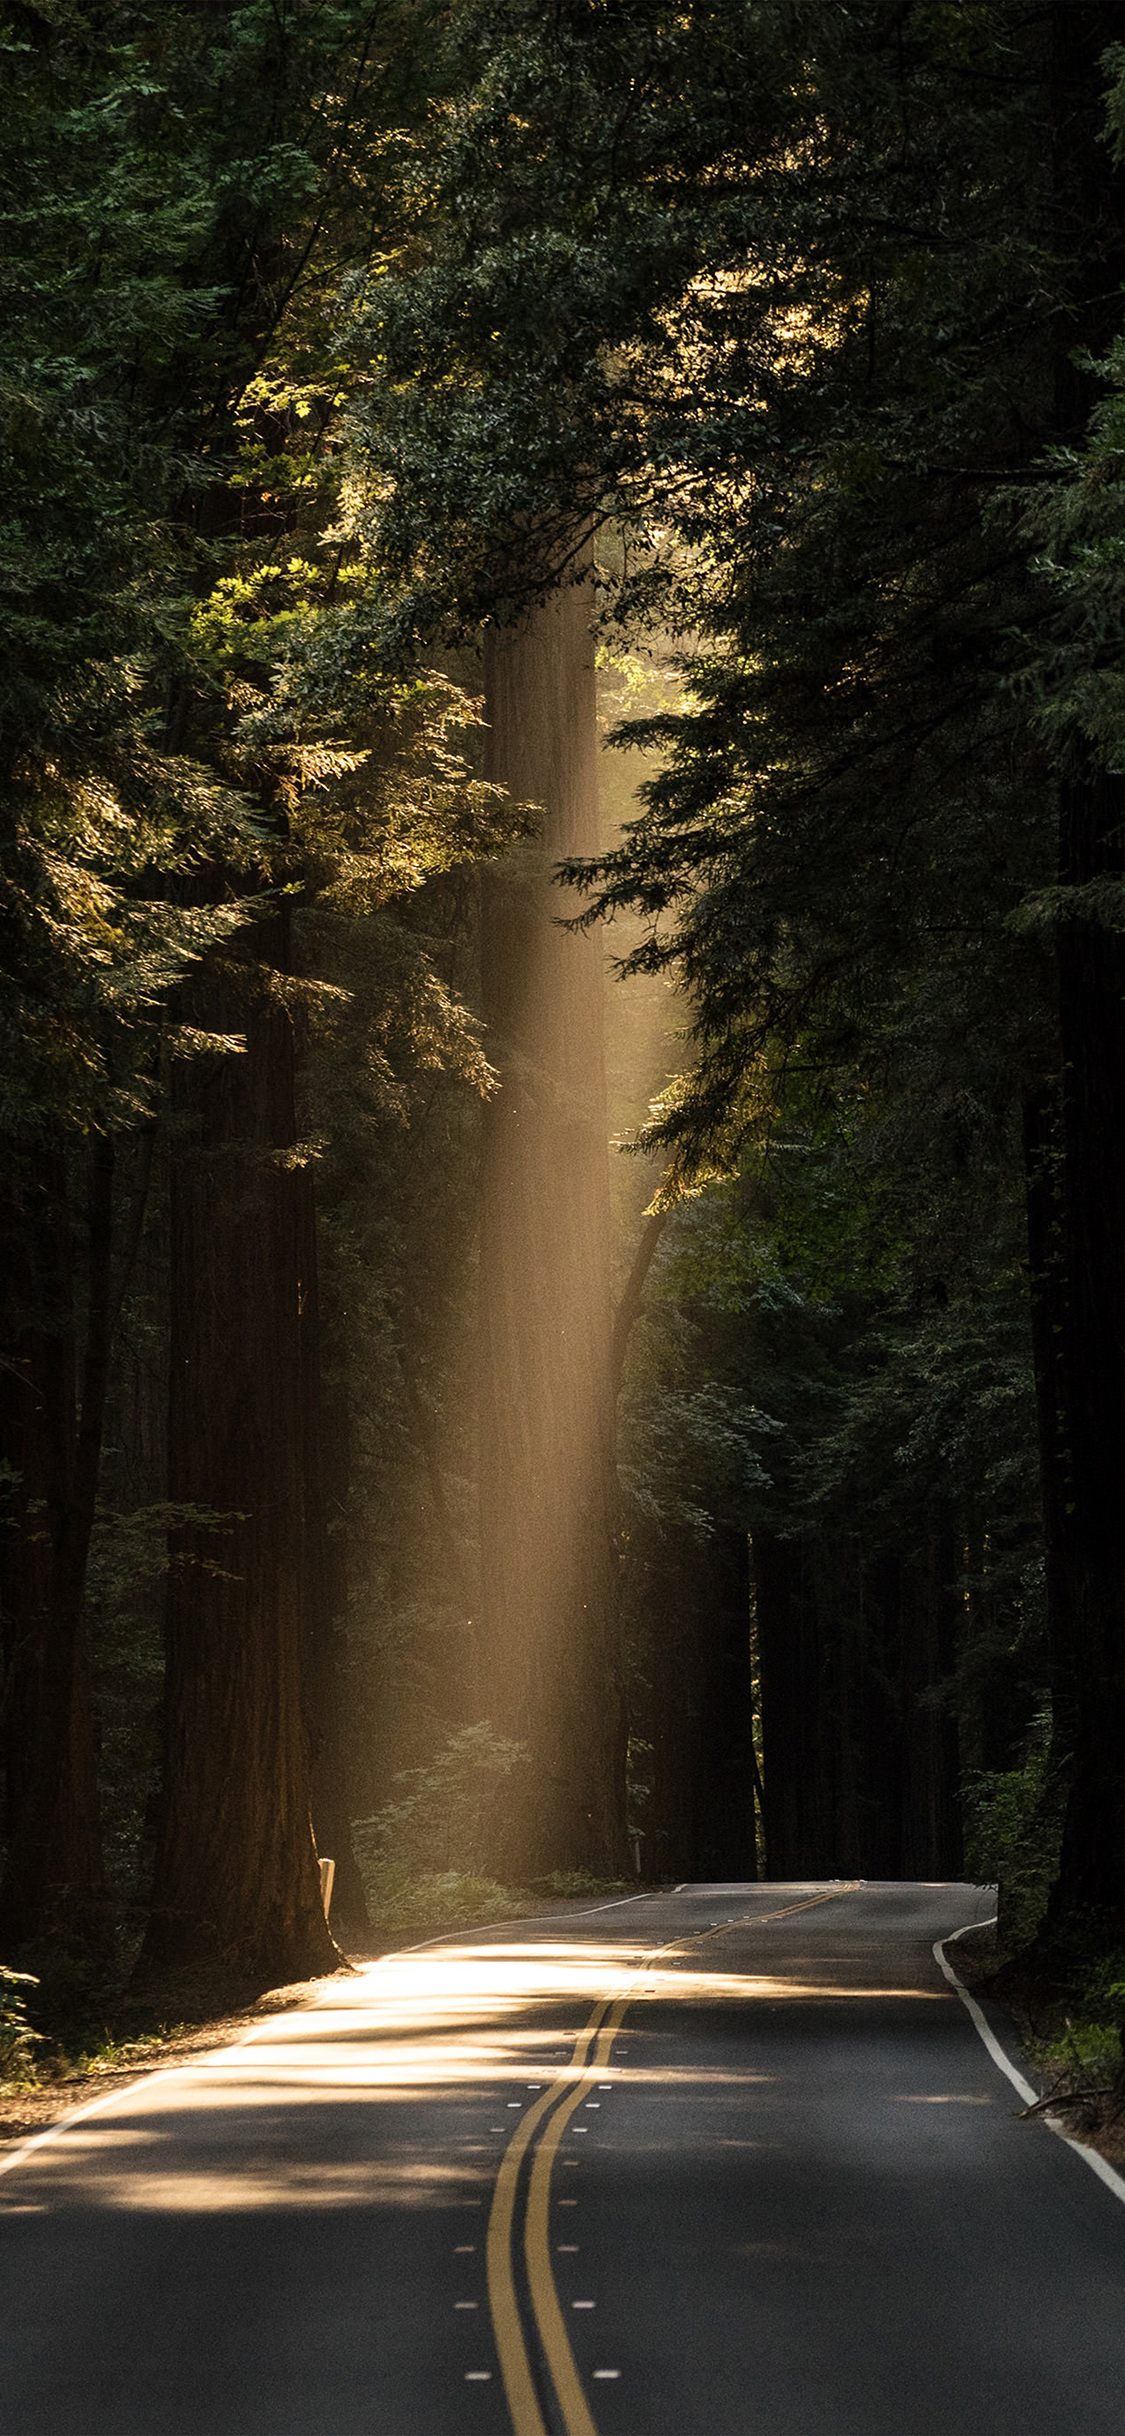 Nh15 Light Road Wood Forest Way Nature Wallpaper